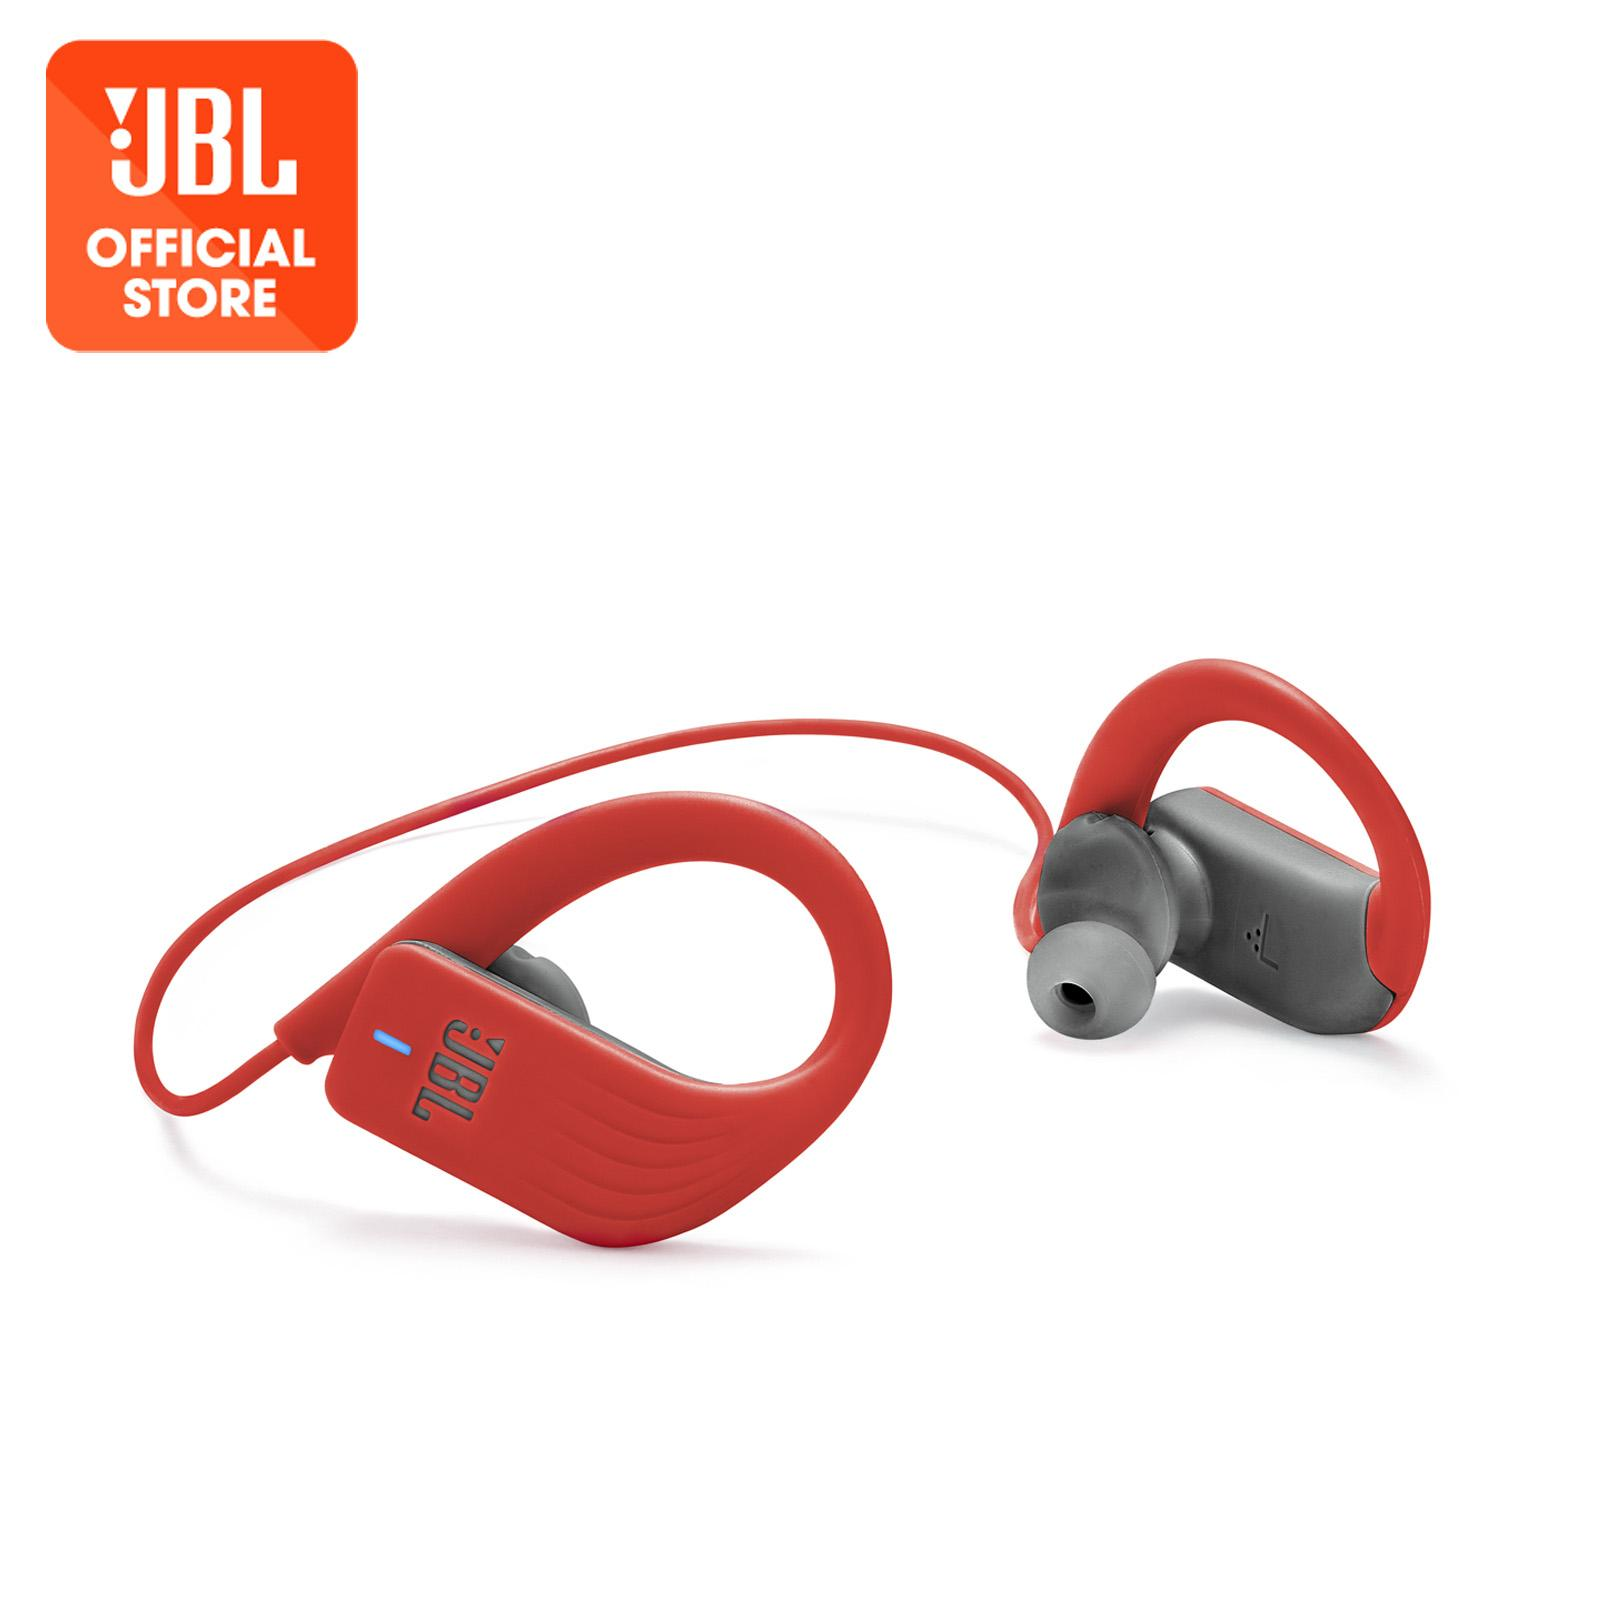 470ae4c58e4 JBL ENDURANCE SPRINT Waterproof Wireless In-Ear Sport Headphones